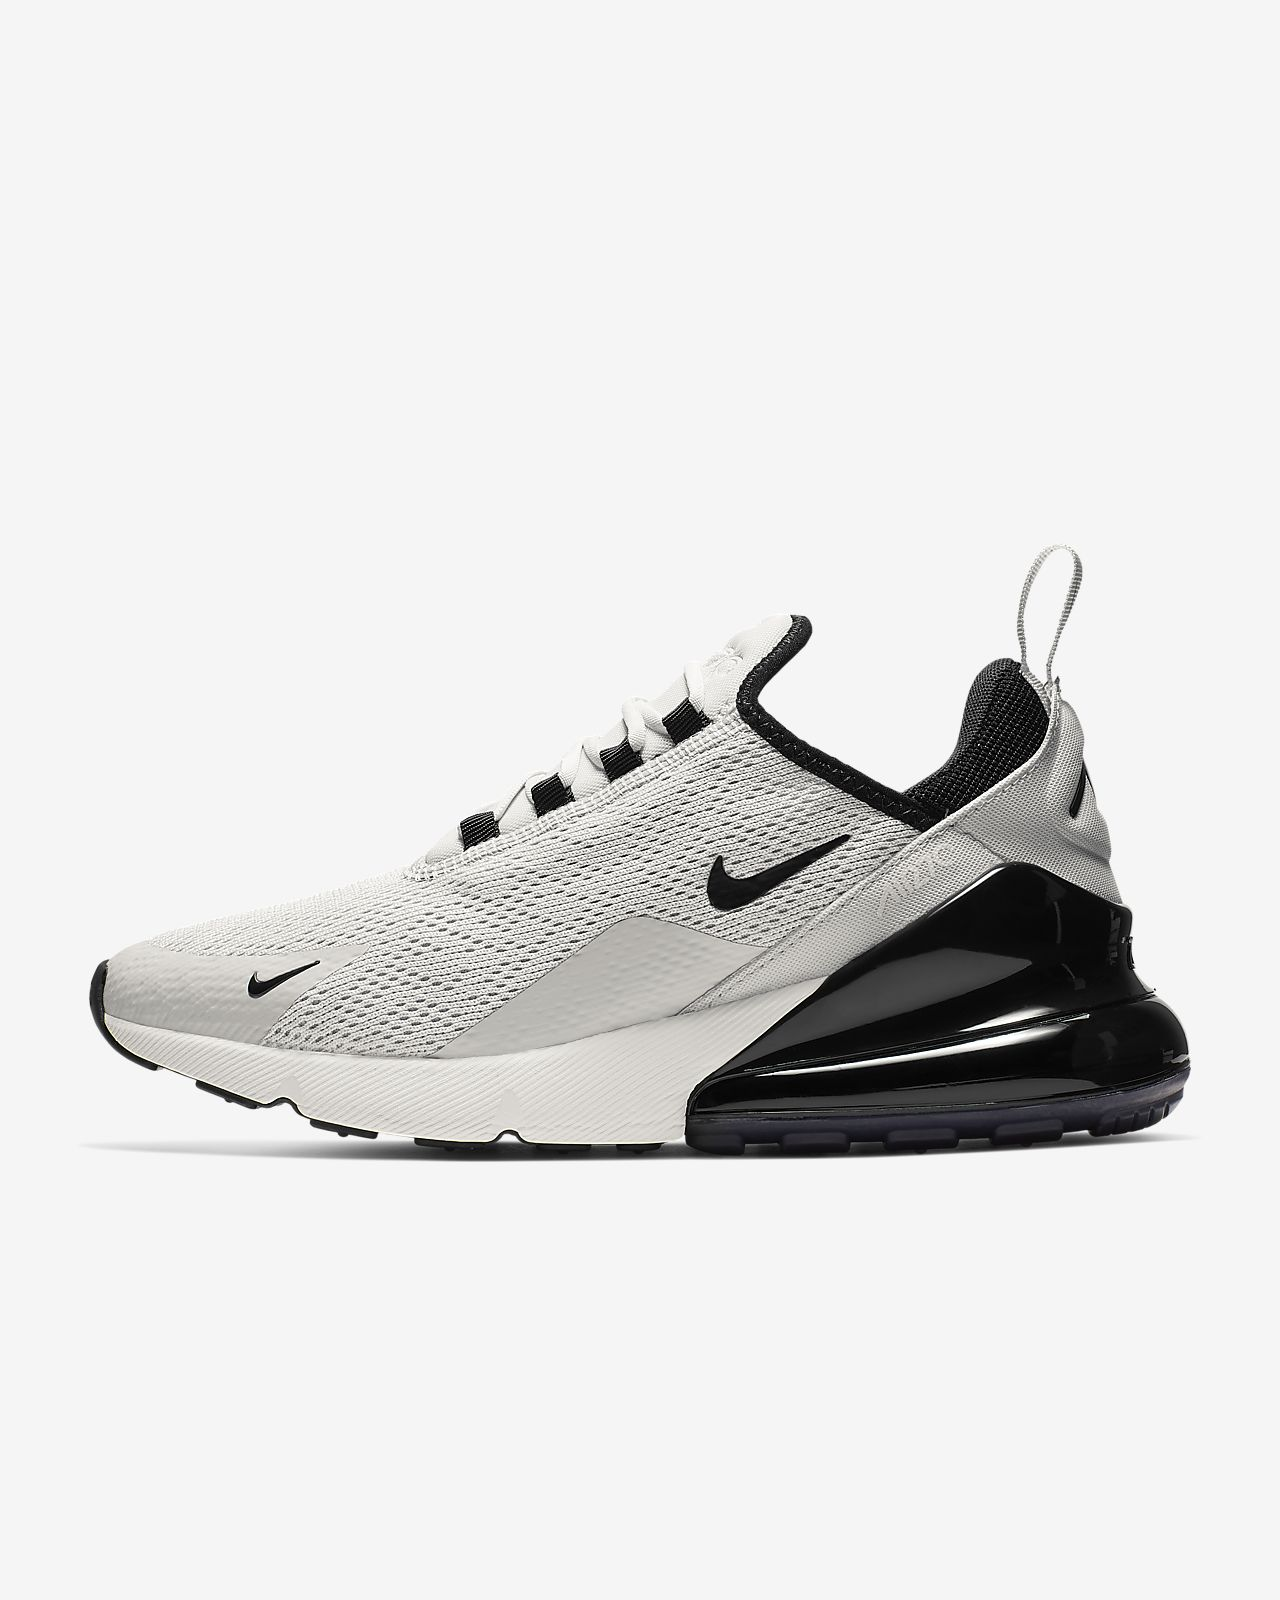 online store be1c7 8f113 ... Nike Air Max 270 Damenschuh